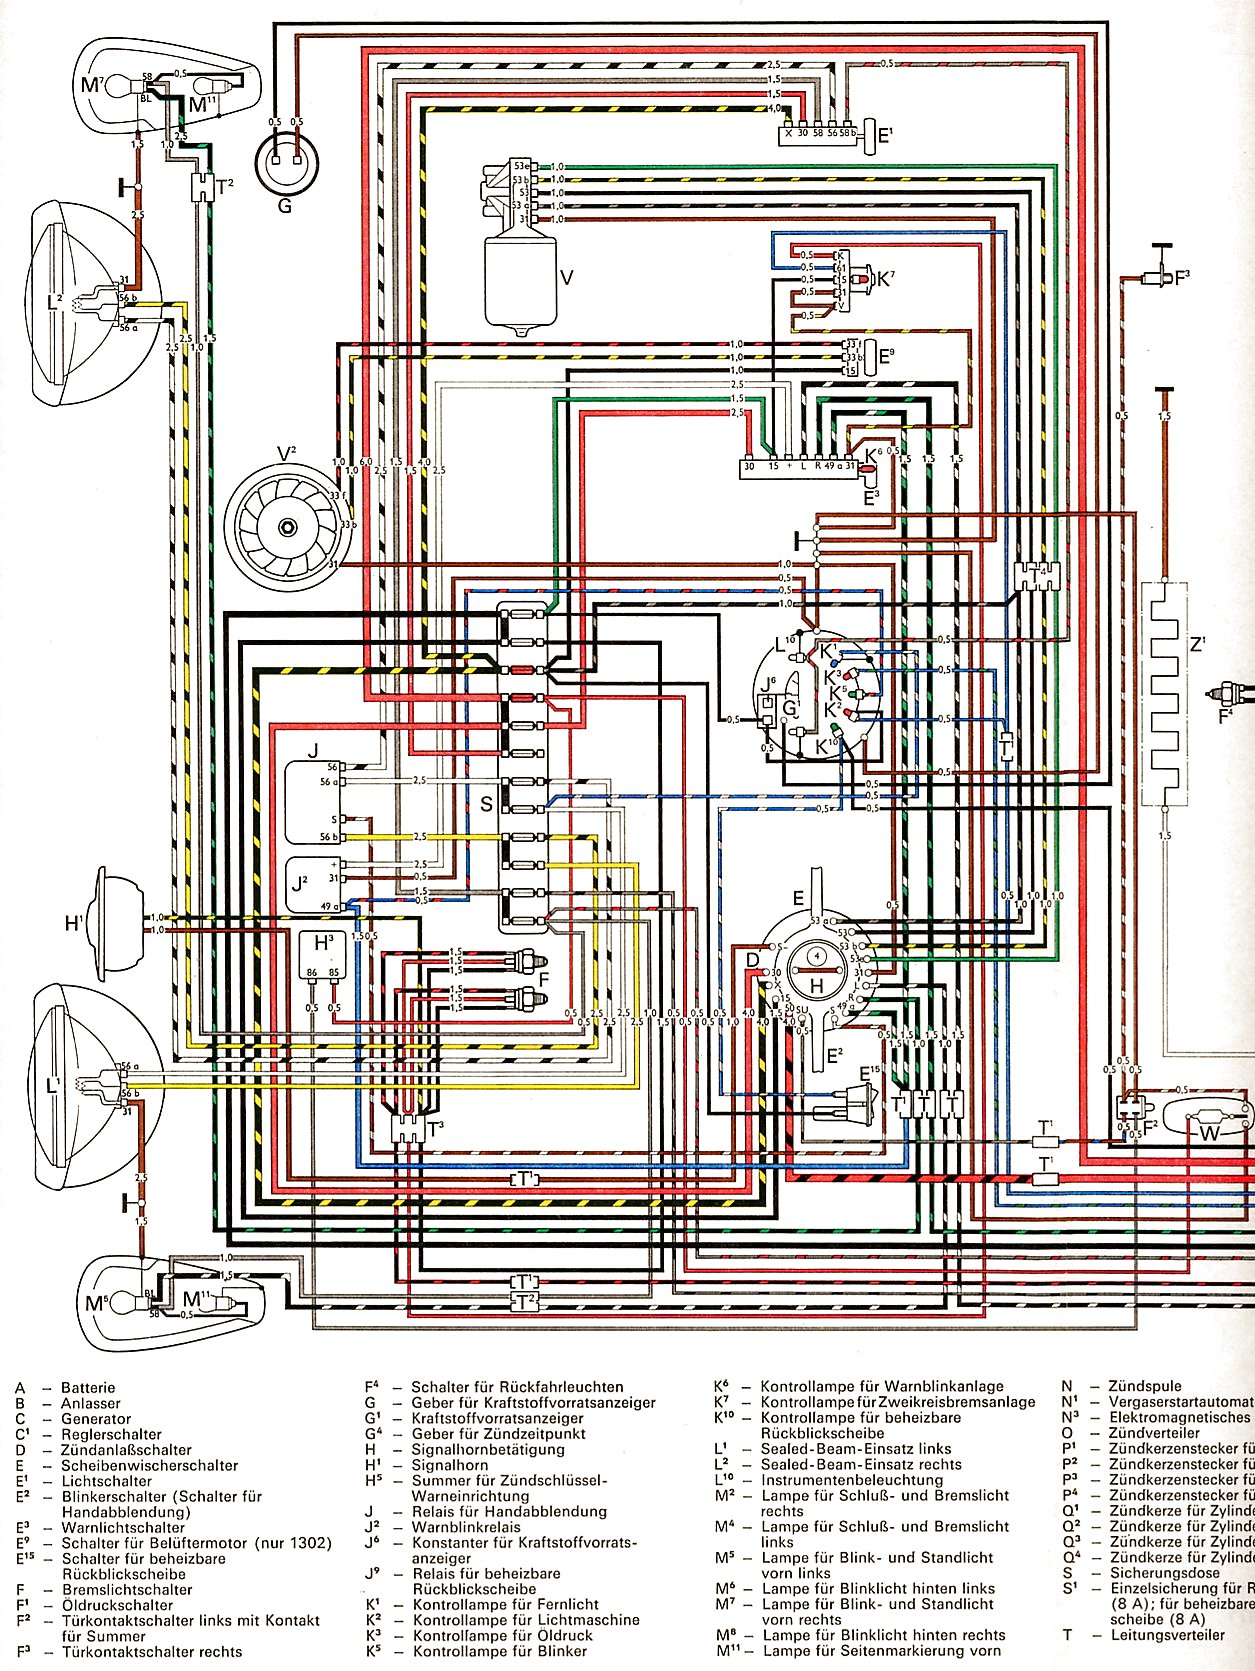 1300_and_1302_USA_from_August_1971 1 wiring diagram shoptalkforums com 1970 vw beetle wiring schematic at n-0.co